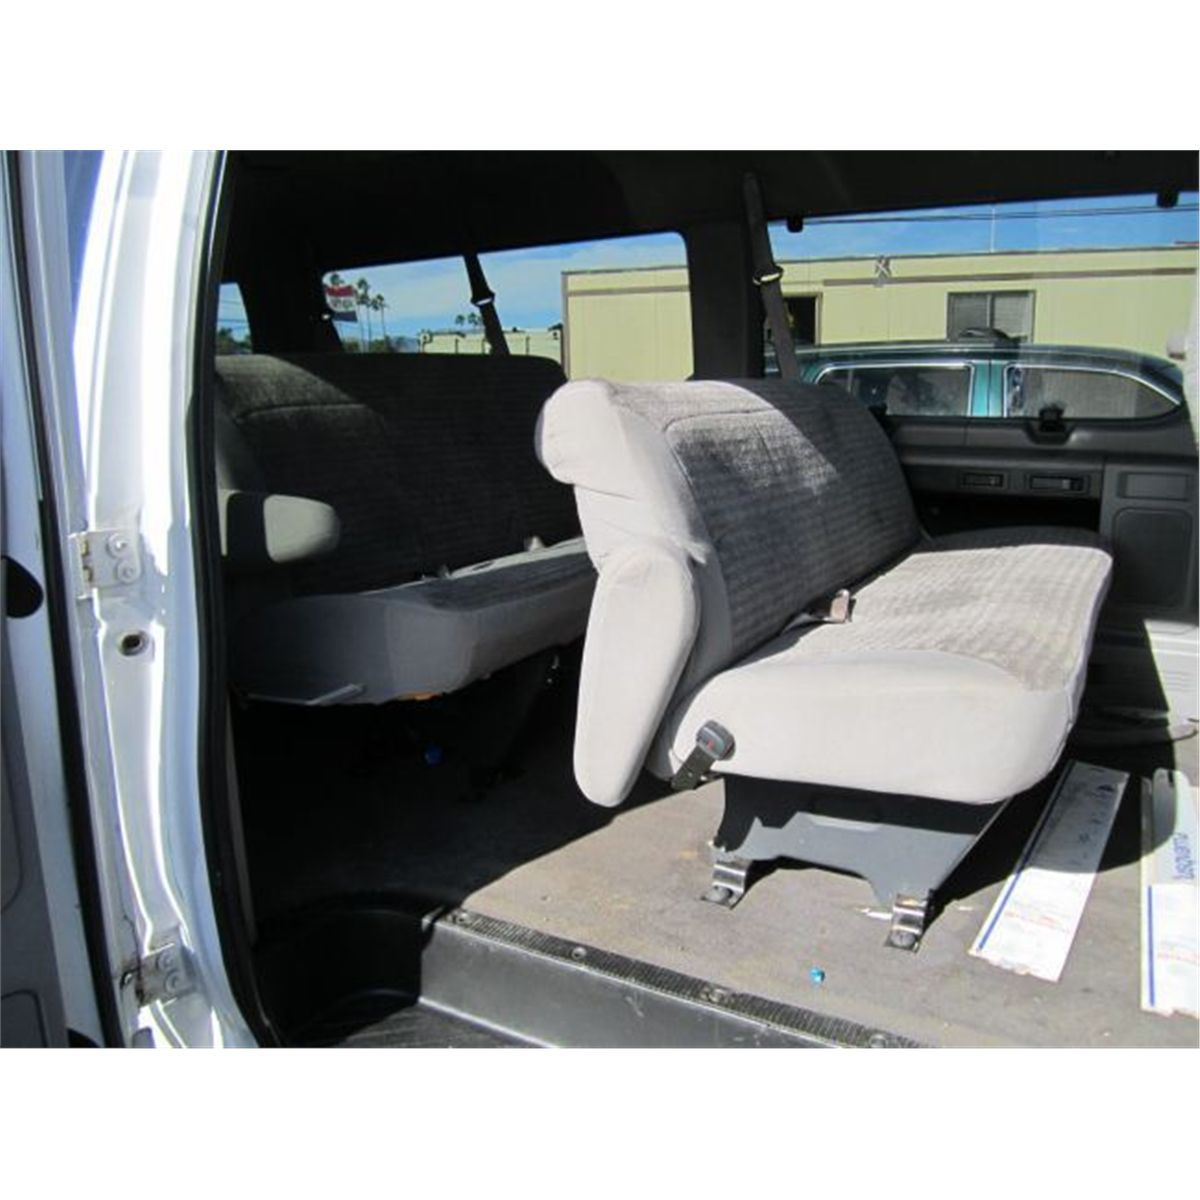 hight resolution of  image 6 2000 ford e 350 xlt 15 passenger van